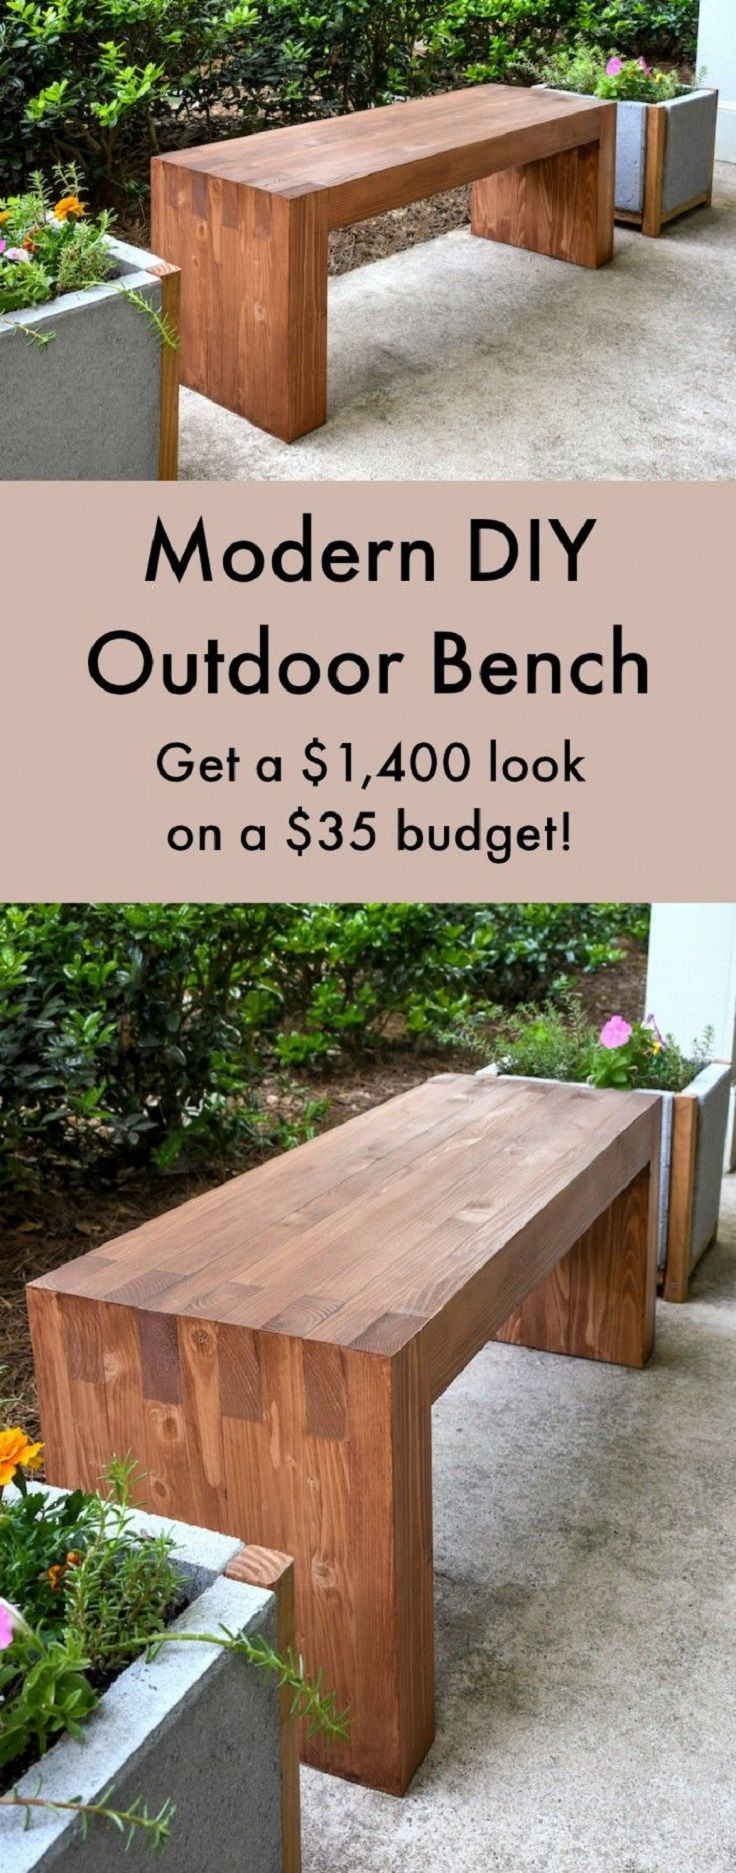 15 lb black felt hardwood flooring underlayment paper home depot of 101 best diy projects images on pinterest bedrooms home ideas and pertaining to modern diy outdoor bench 15 practical diy woodworking ideas for your home i like this